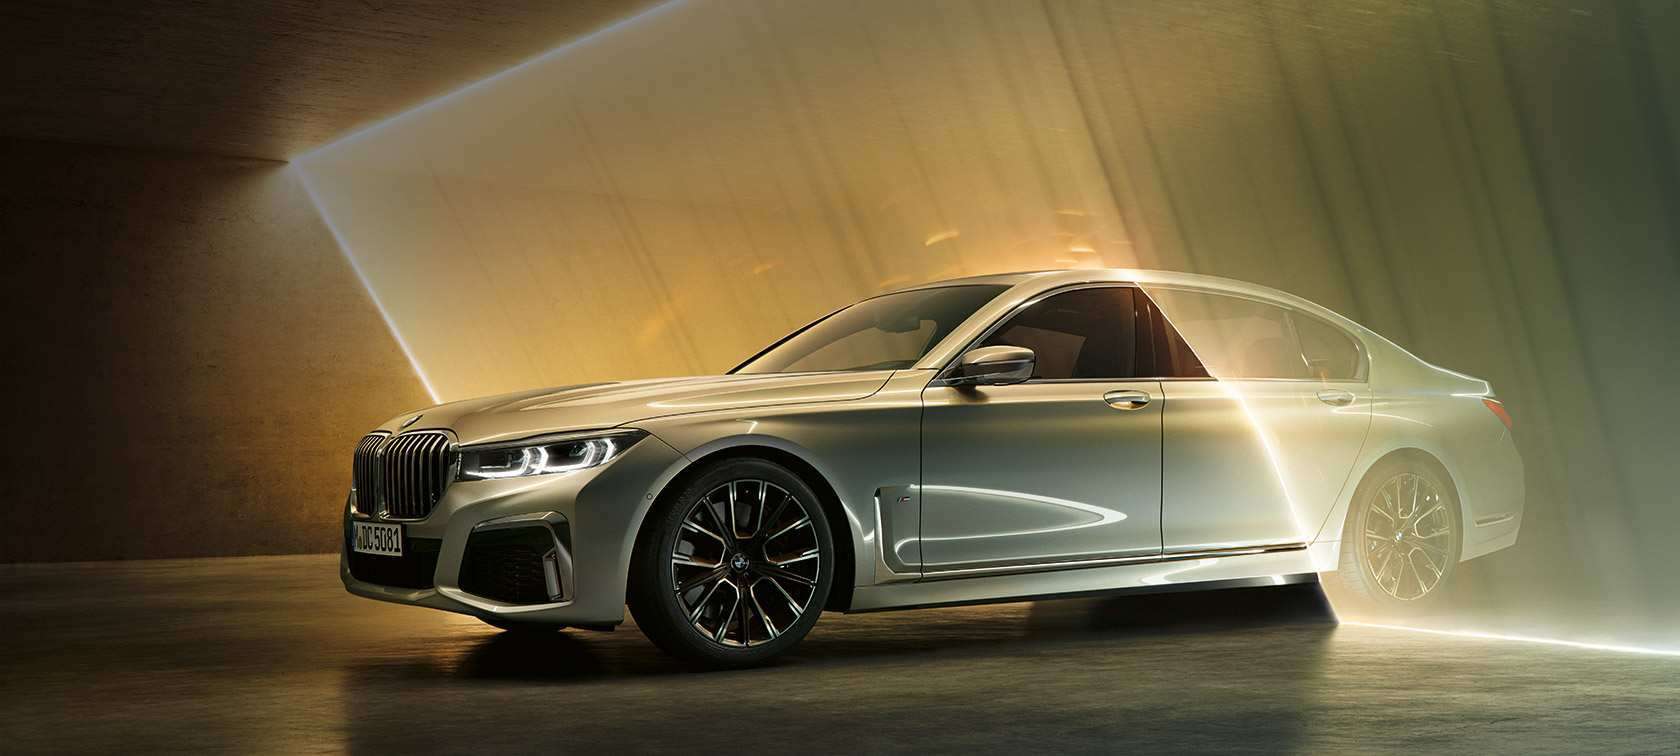 31 New 2019 Bmw 7 Series Perfection New Ratings